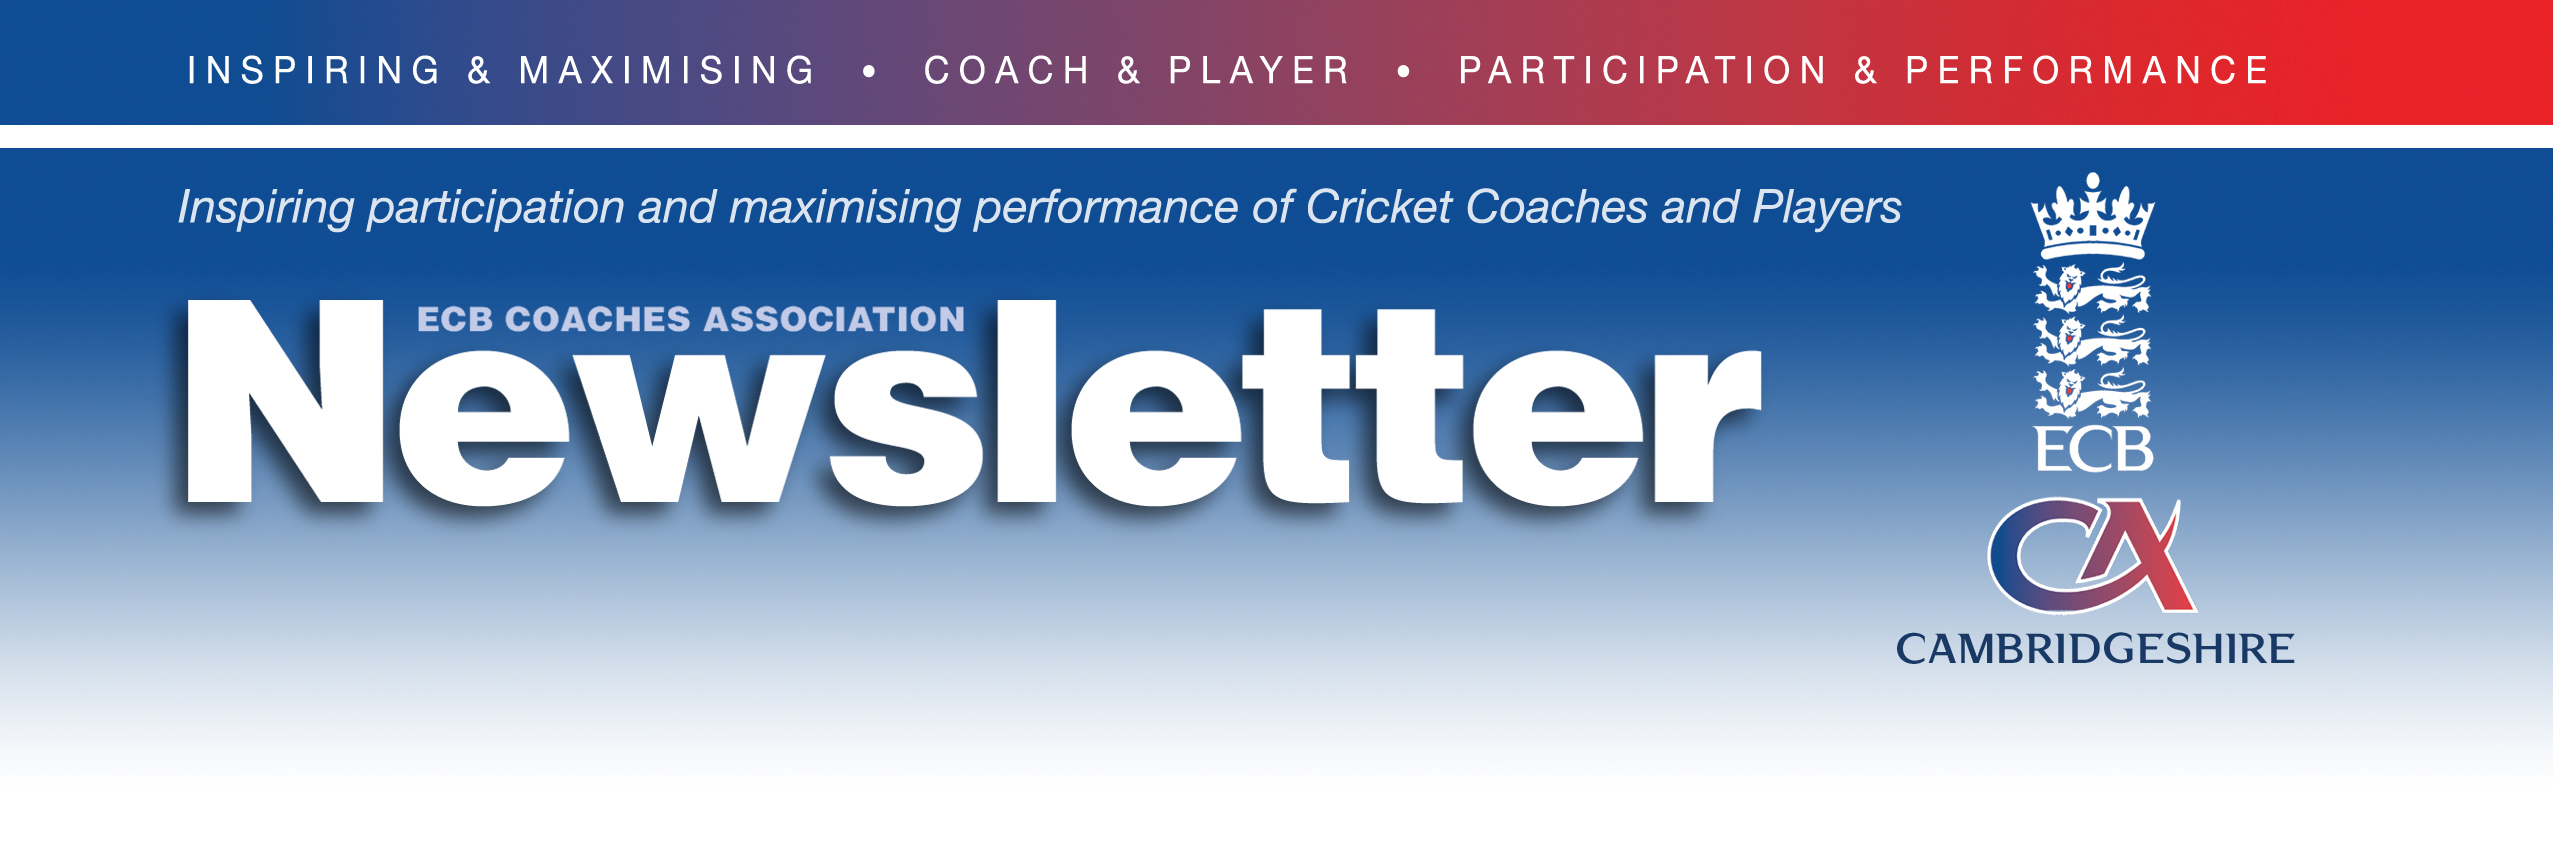 ECB Coaches Association News